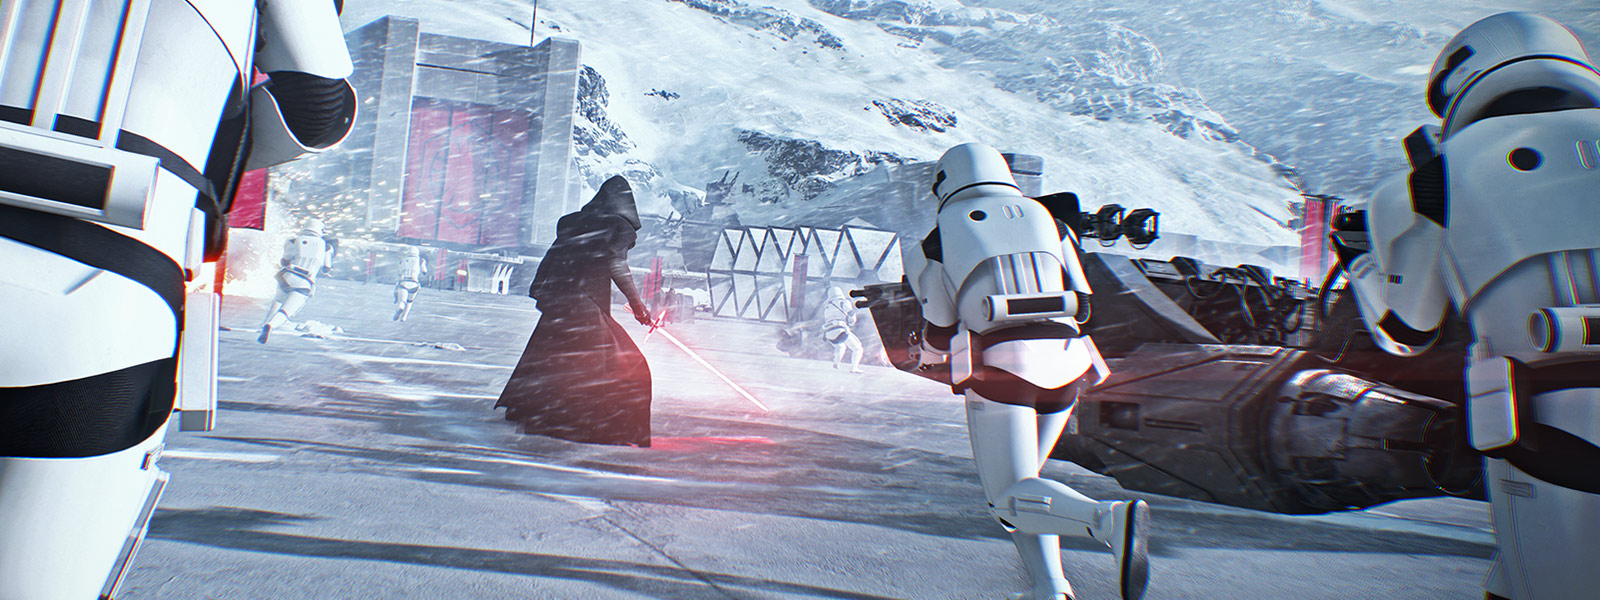 Kylo Ren with a Stormtrooper army storm a base in a snow storm